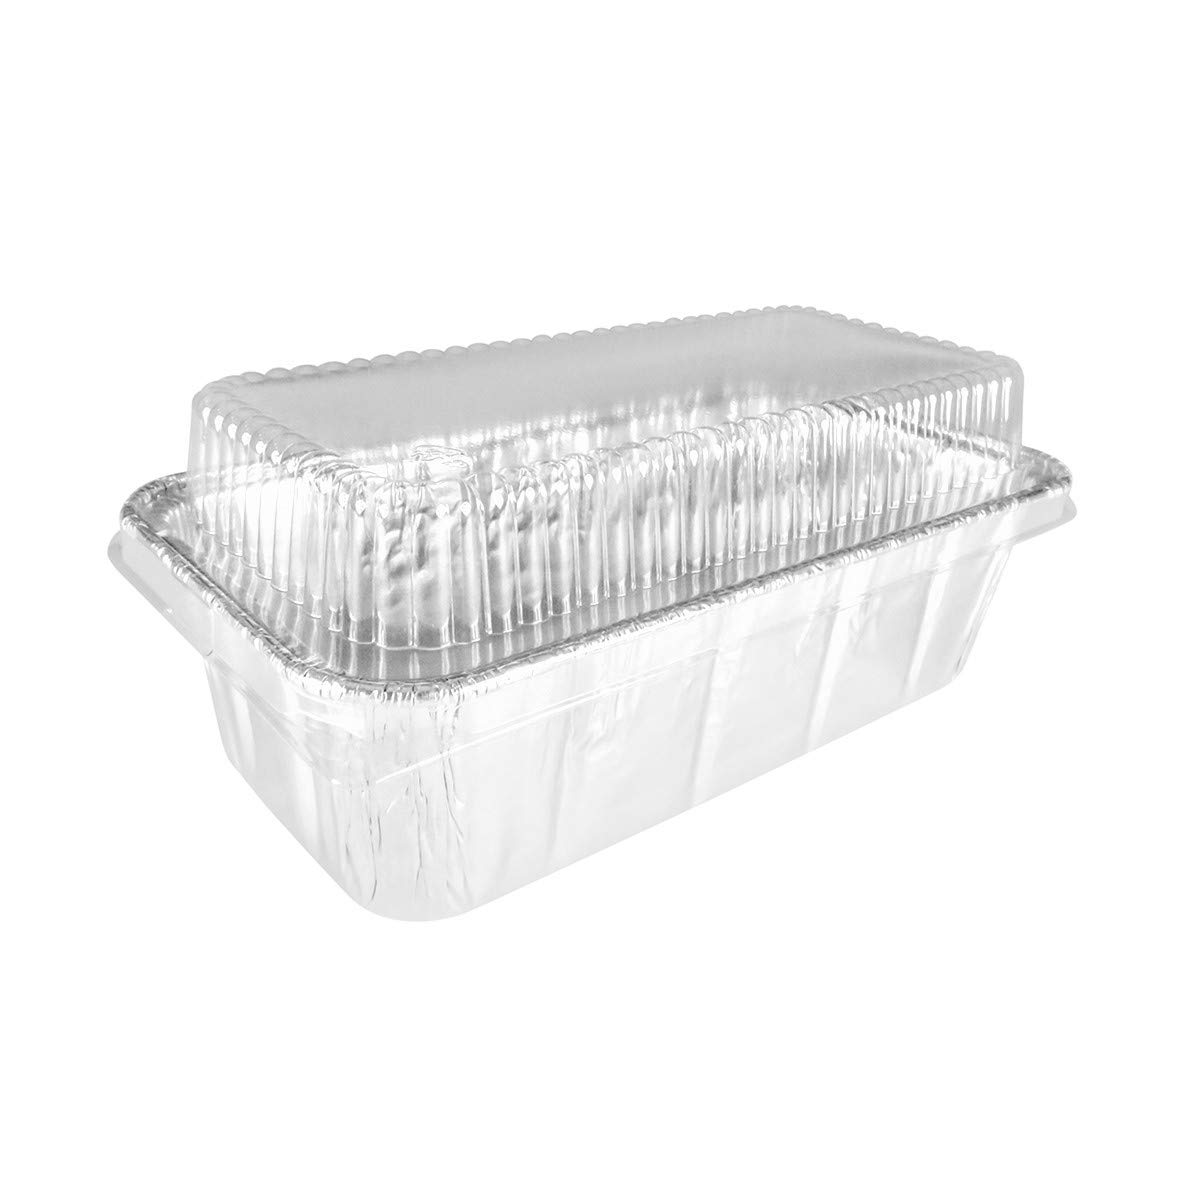 Disposable Aluminum 2 Lb. Loaf Pan with Clear Plastic Snap on Lid #5100P (25) by Handi-Foil (Image #1)